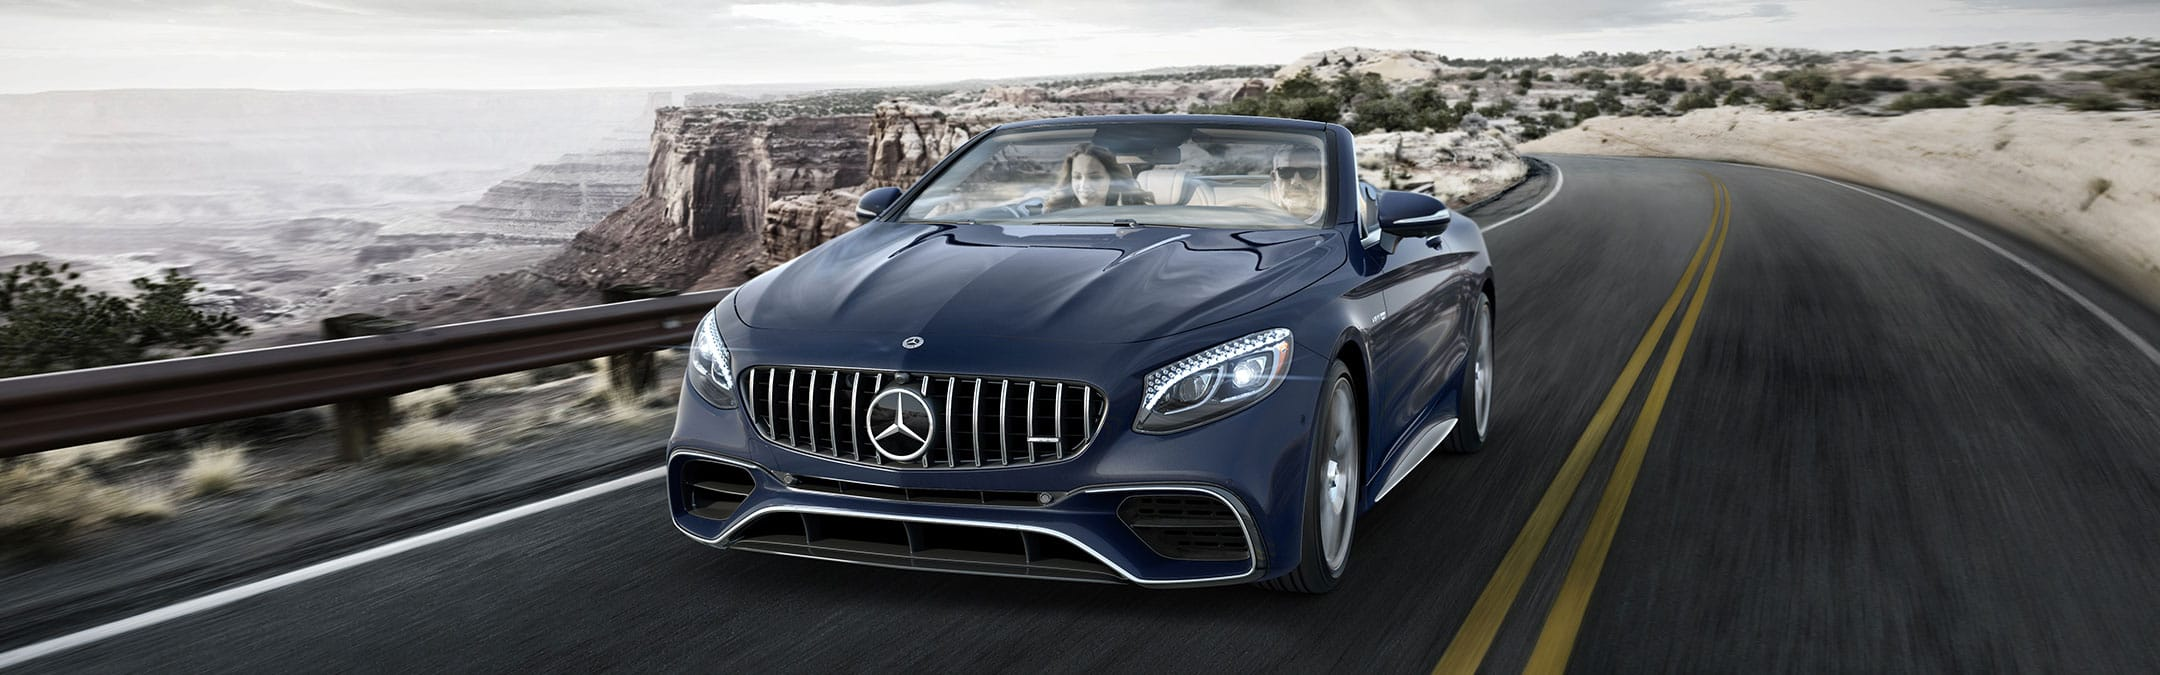 2019 Mercedes-AMG S-Cabriolet Performance